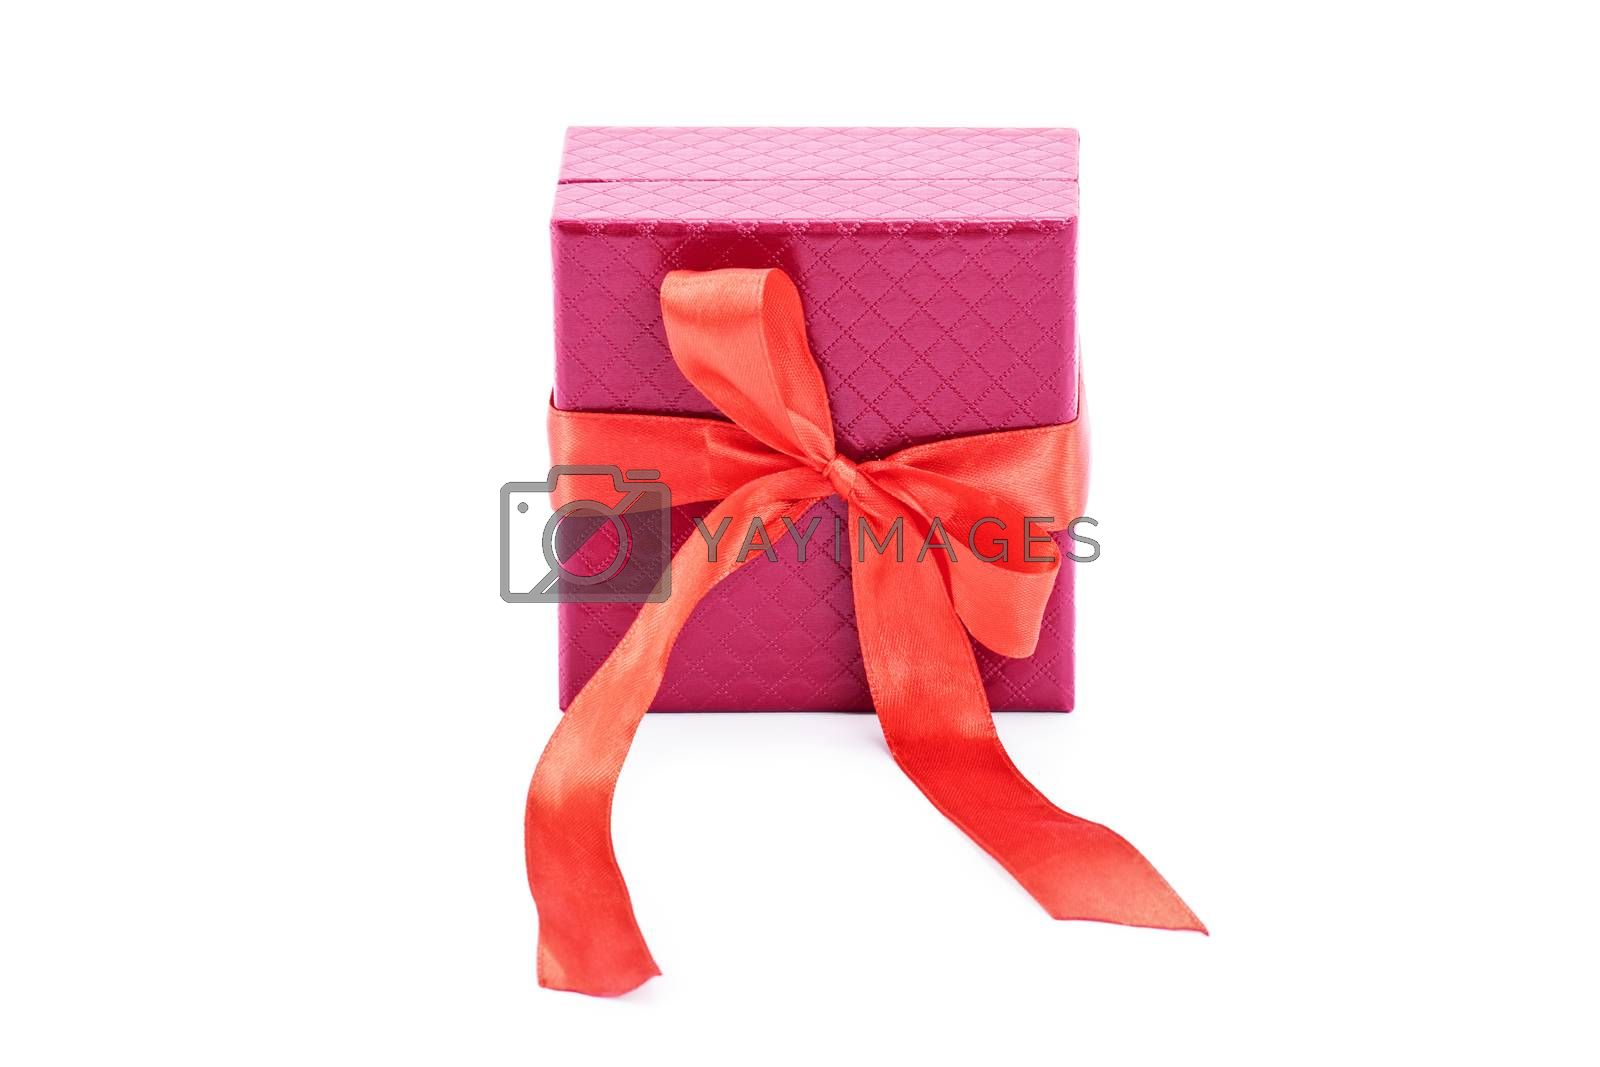 Close up of a red gift box and red bow ribbon, isolated on white background. Christmas, New Year, anniversary, birthday, Valentine's Day concept.